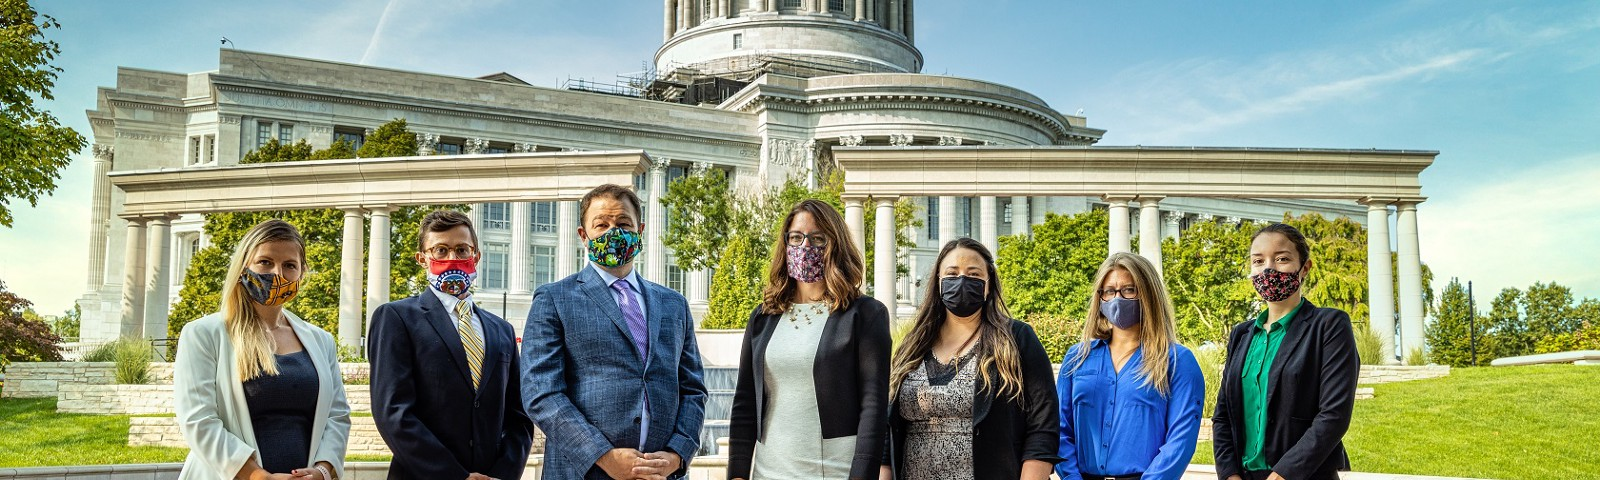 The Missouri Science & Technology Policy Initiative team pictured outside the Missouri State Capitol building